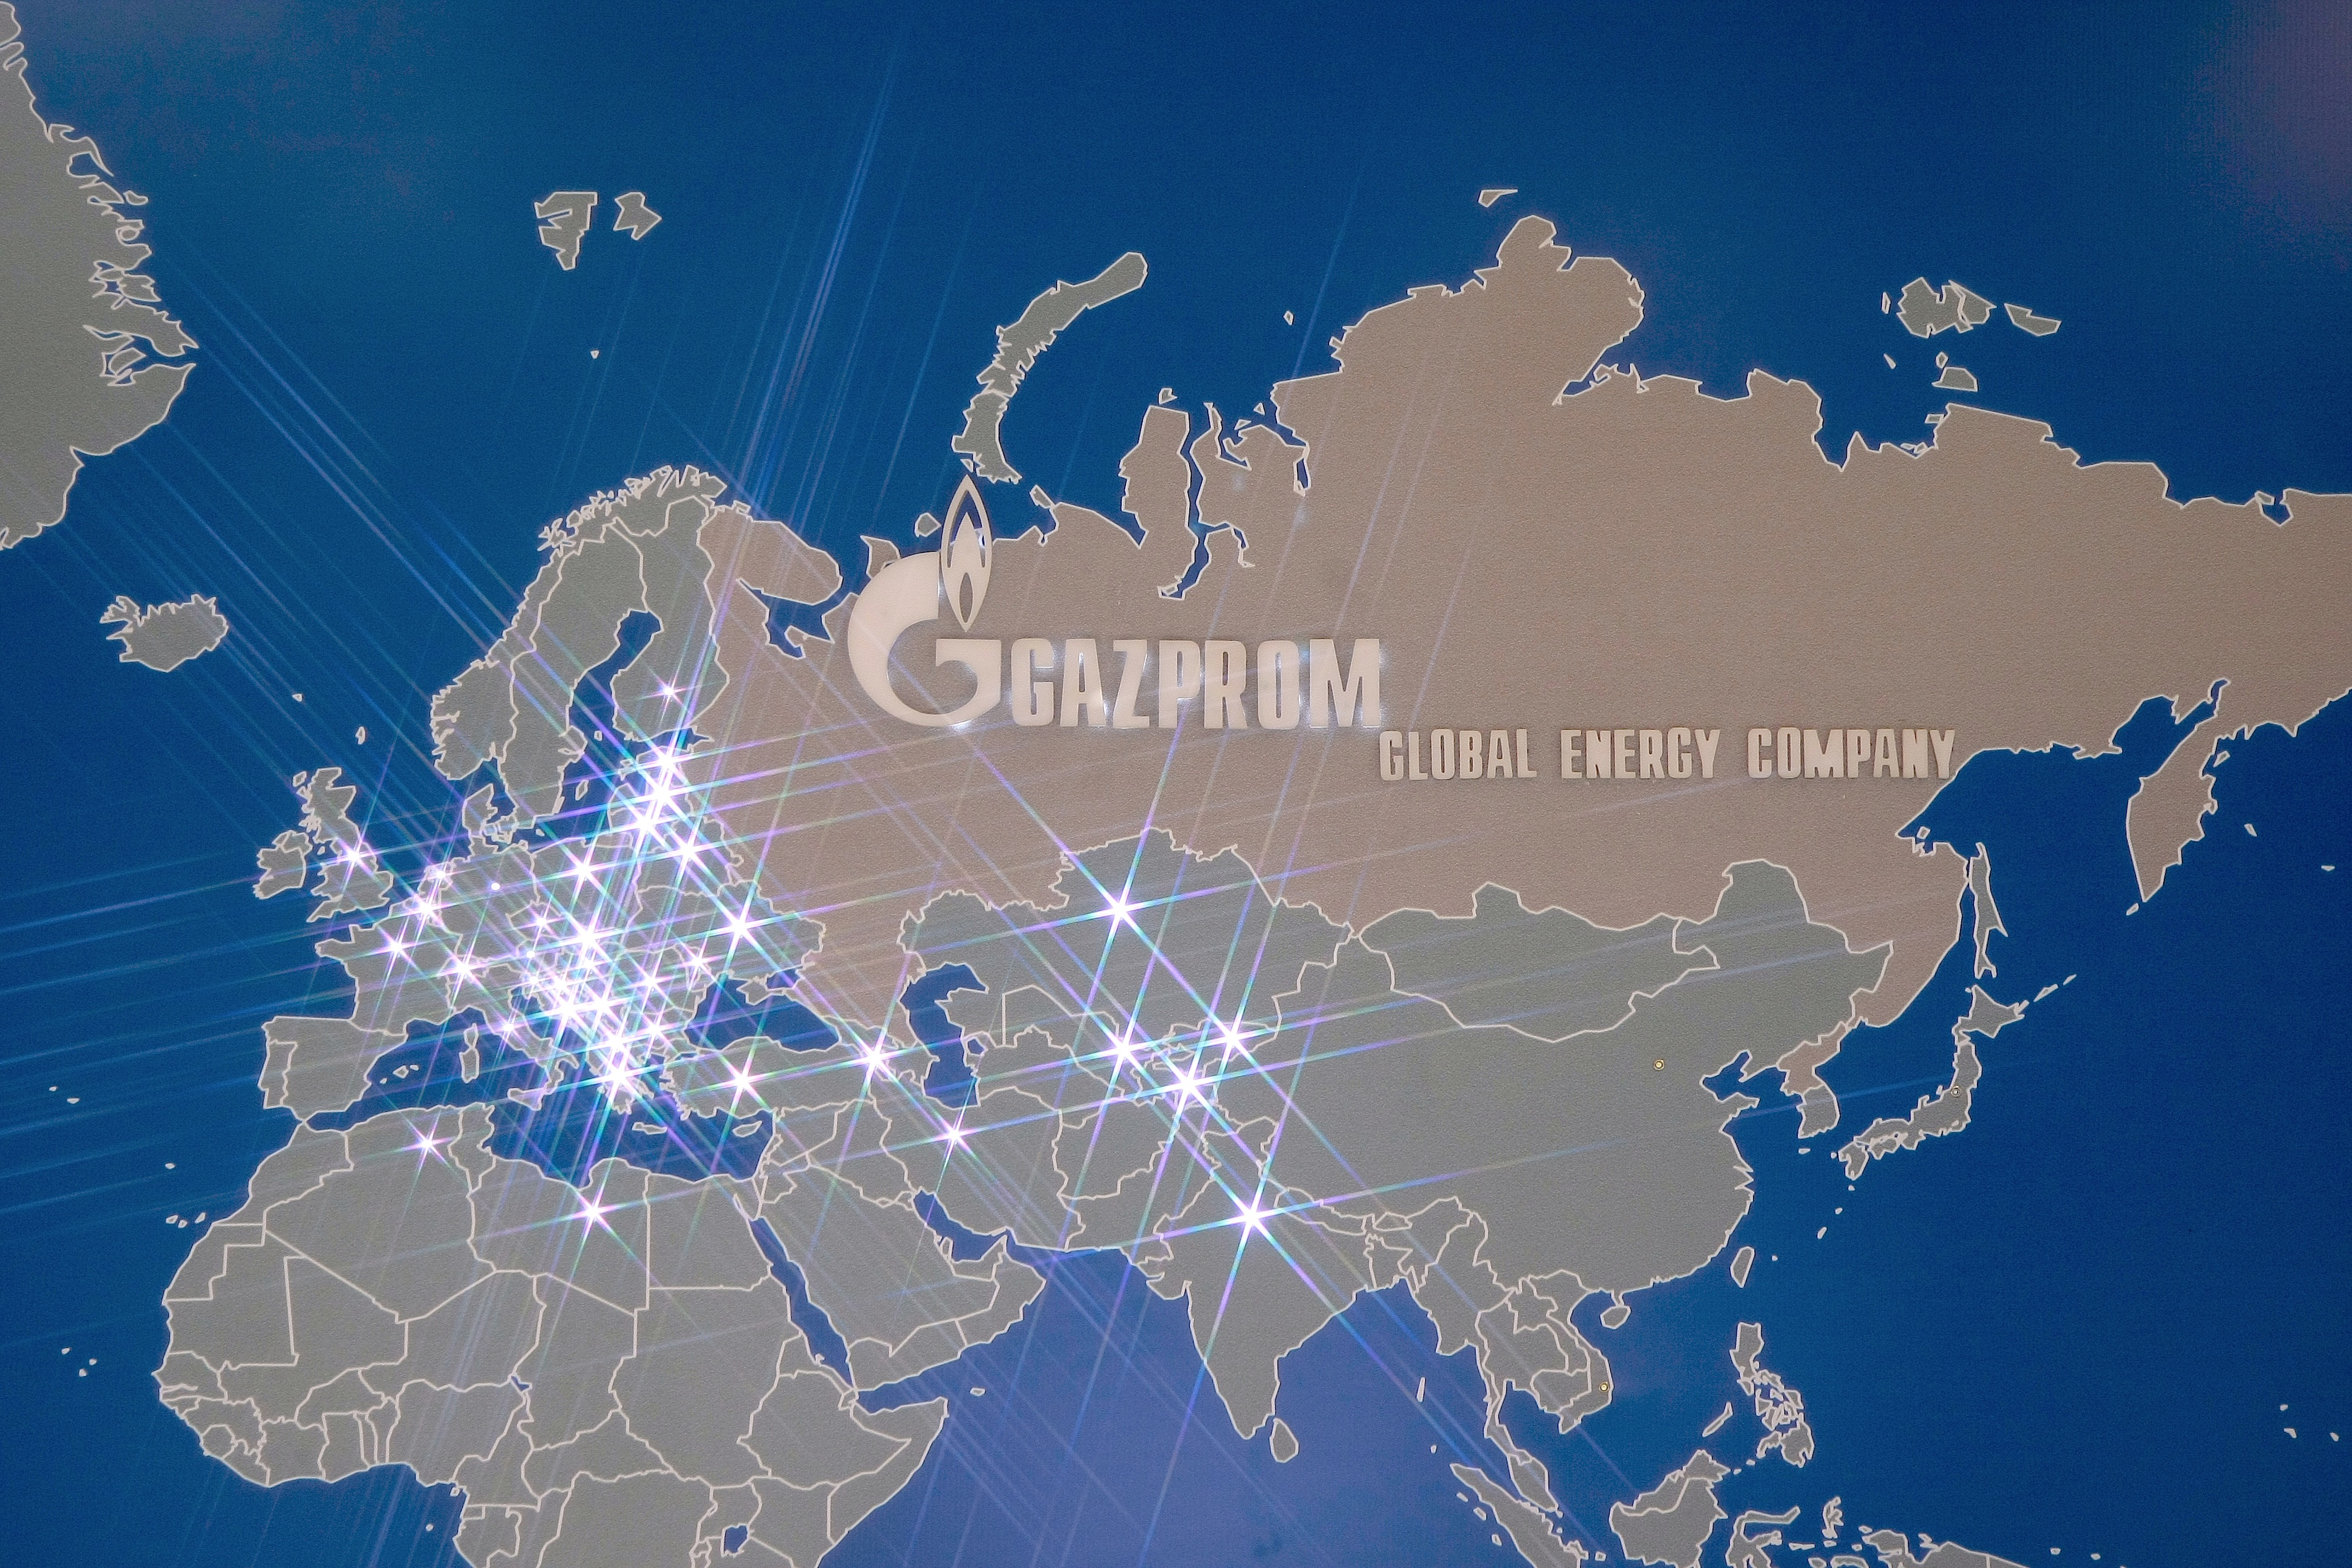 Gazprom and the energy sector 2006